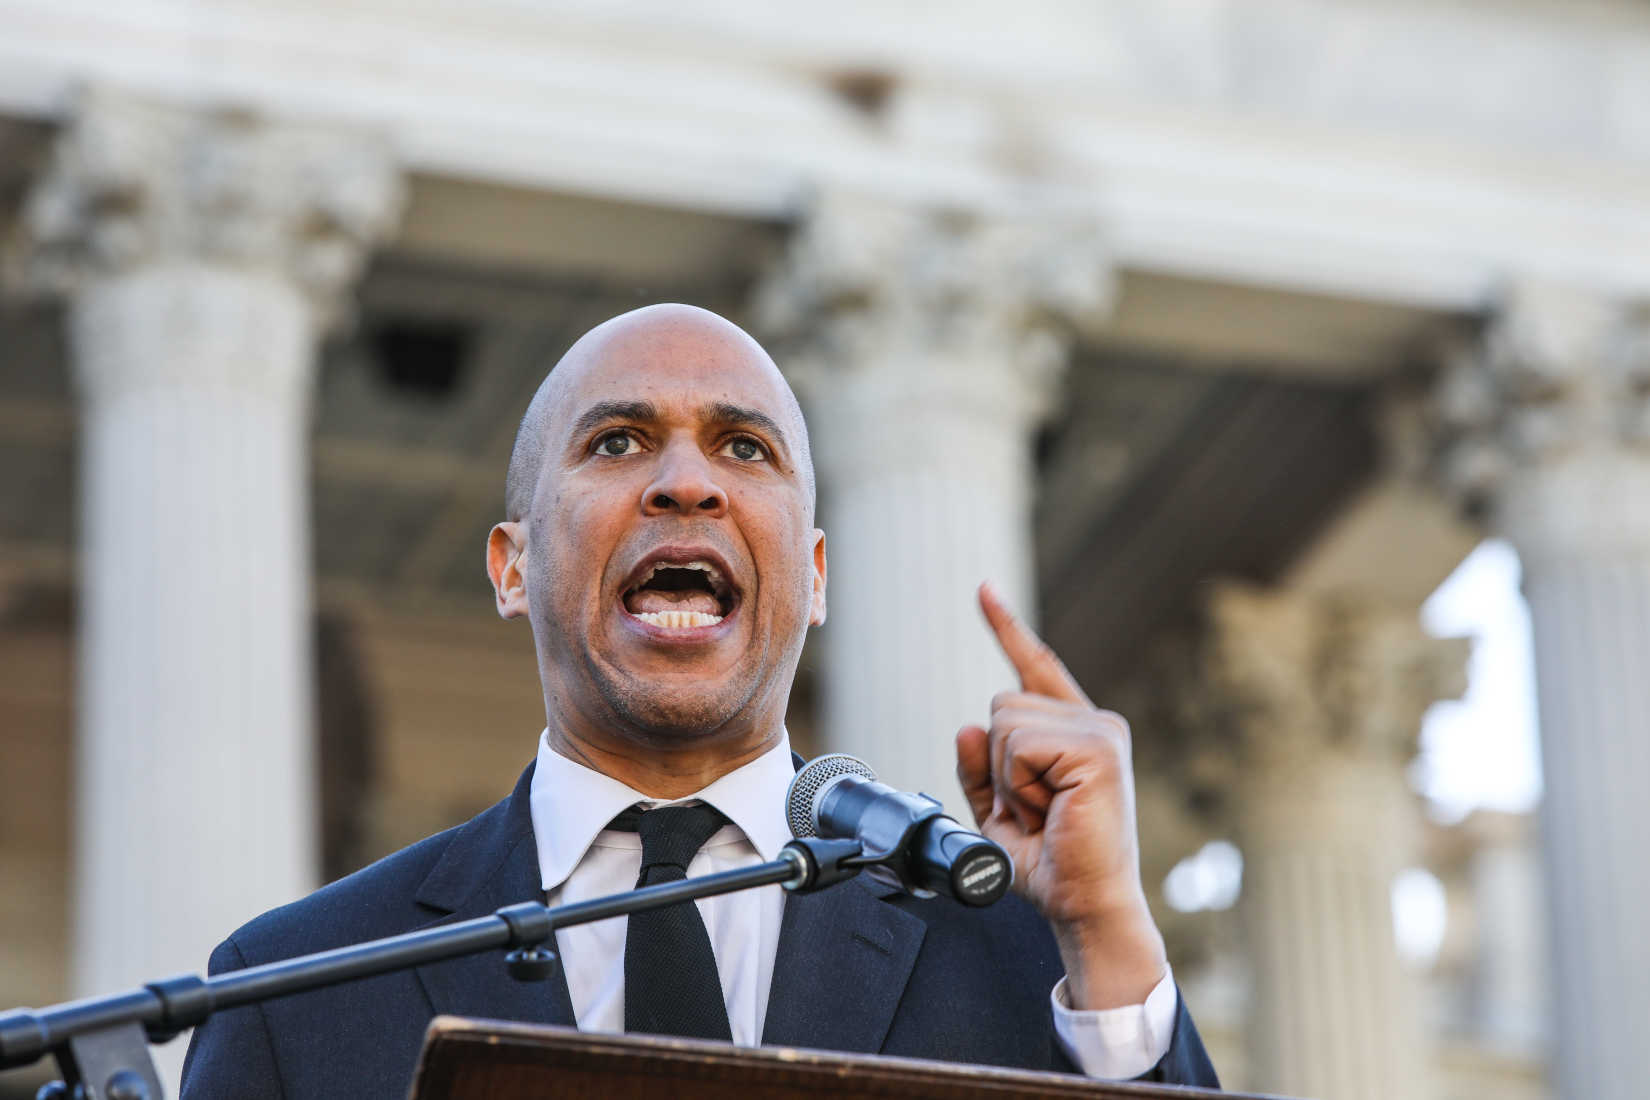 Cory Booker Ignores Facts, Reason, and History in His 2A Attacks